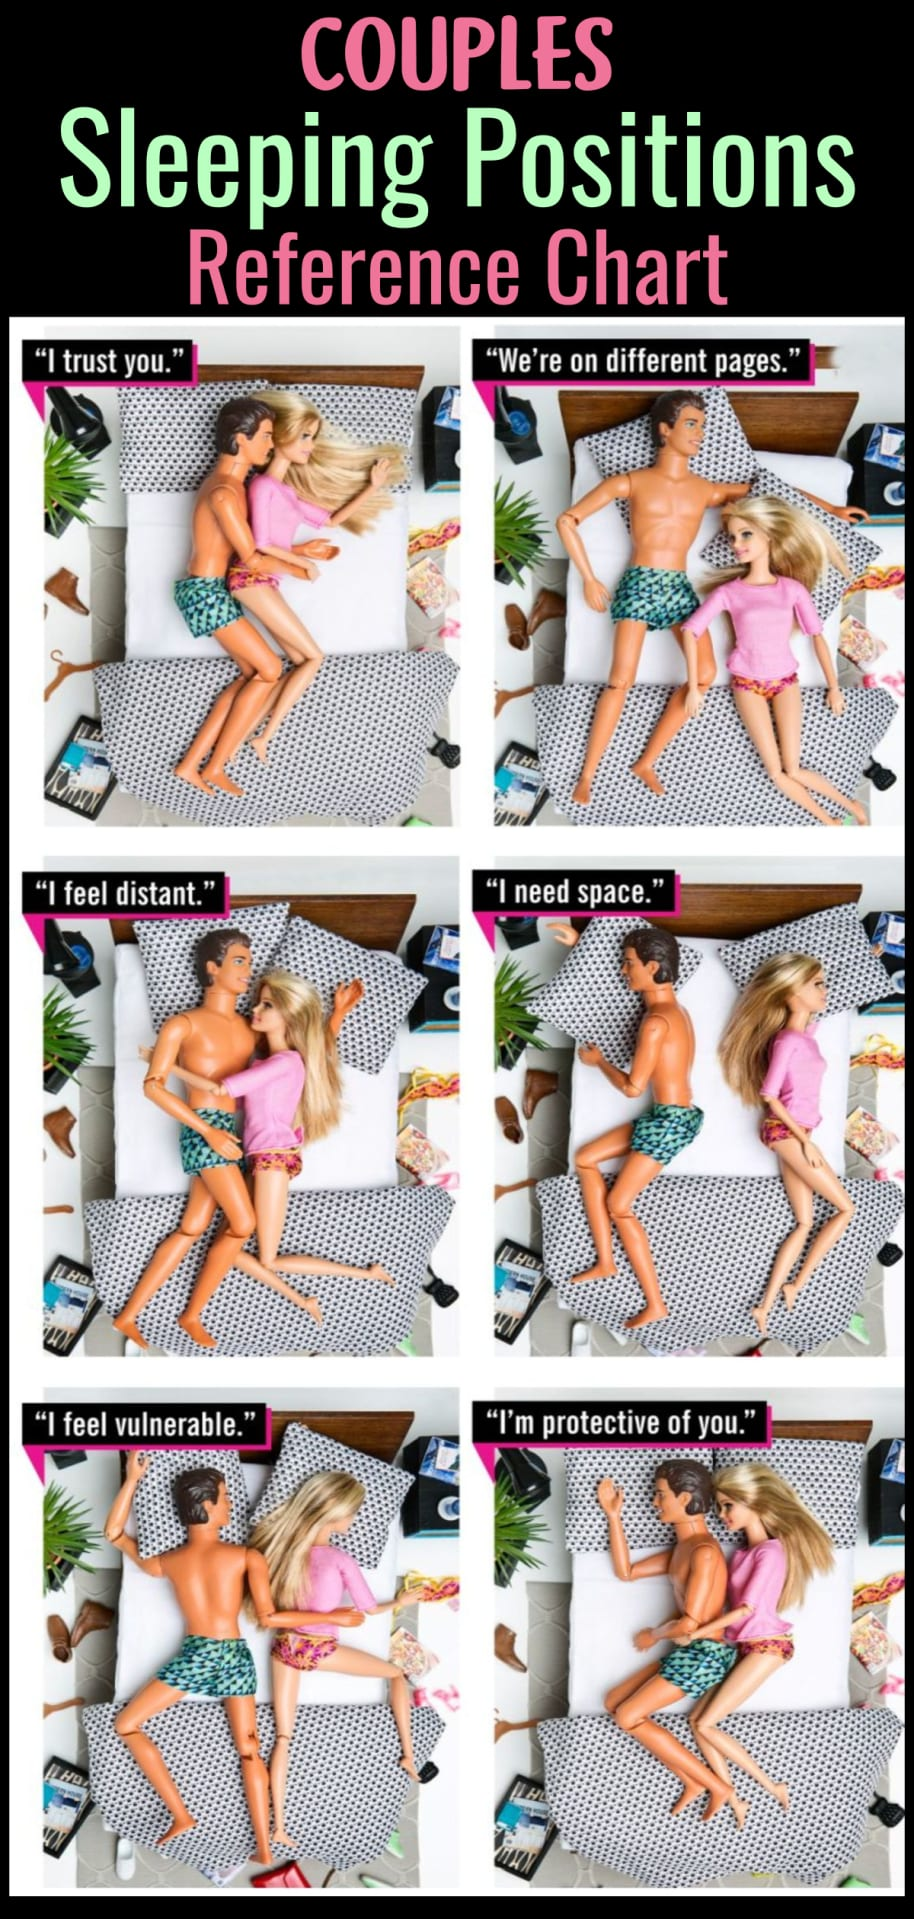 What couples sleeping positions mean